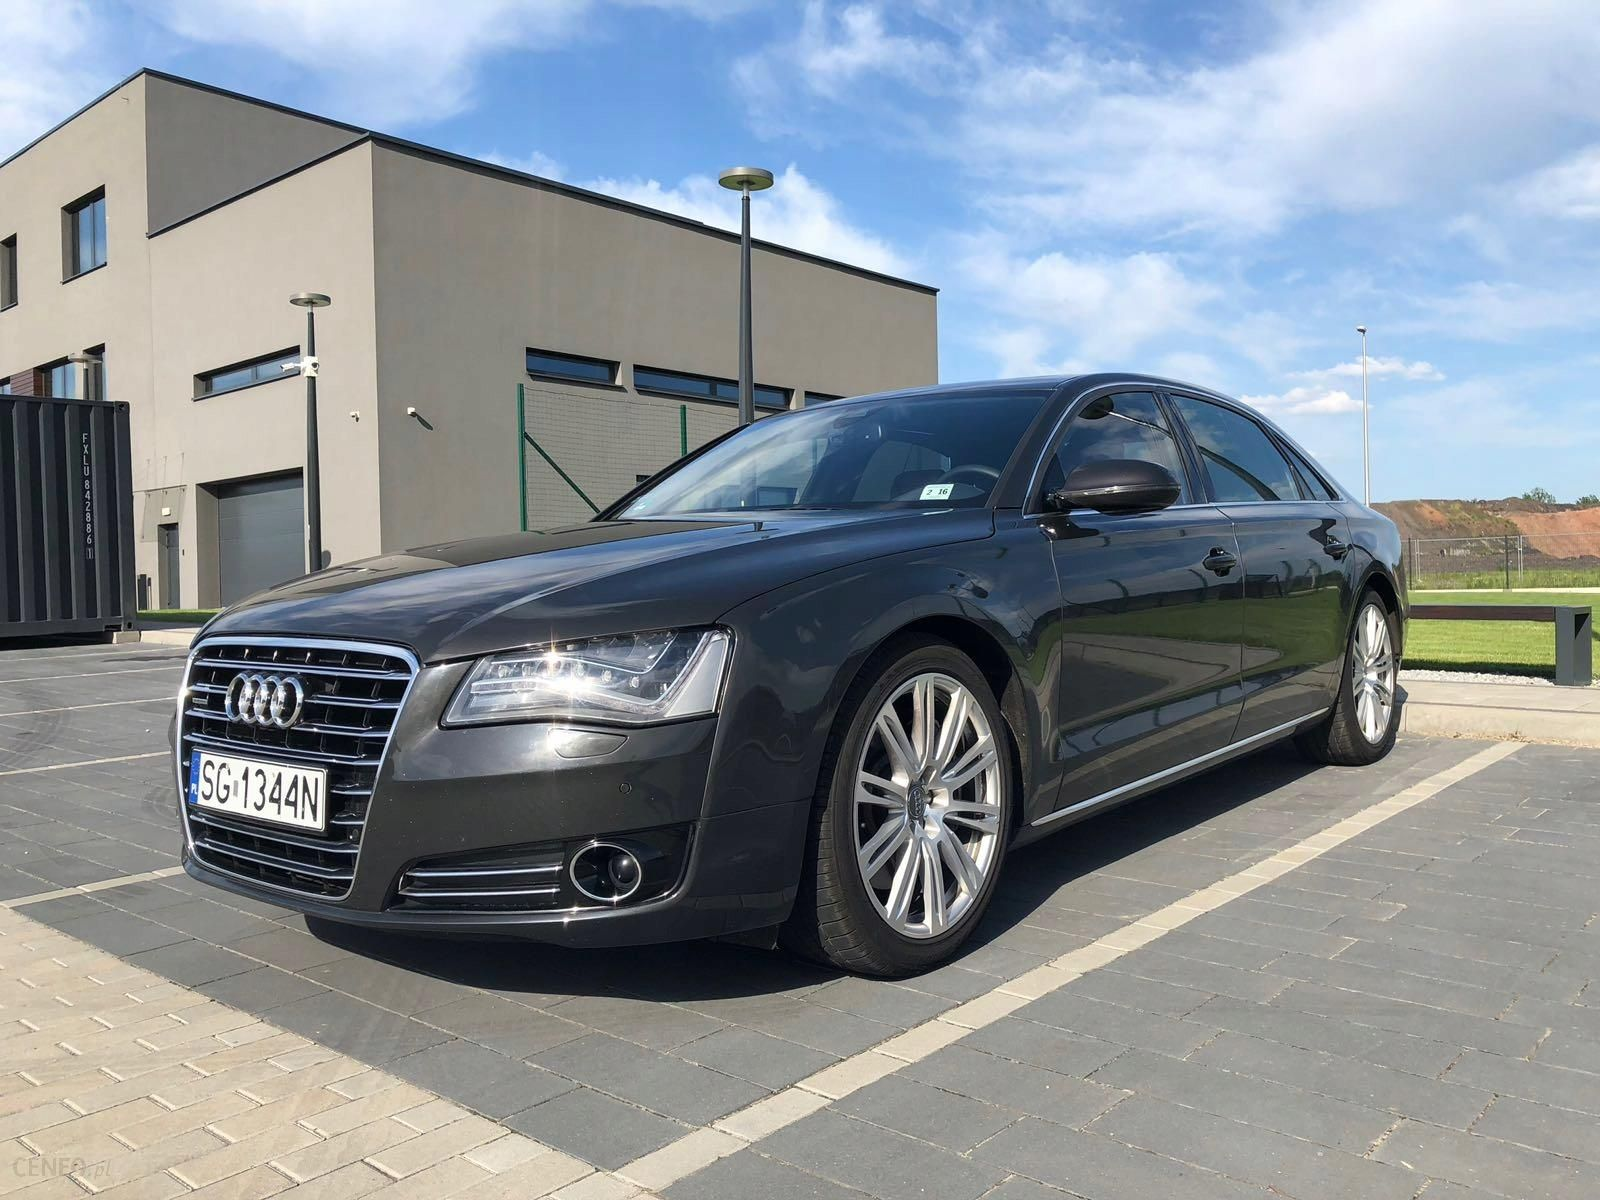 Audi A8 4h D4 Long 4 2 Fsi Bang Olufsen Panorama Opinie I Ceny Na Ceneo Pl